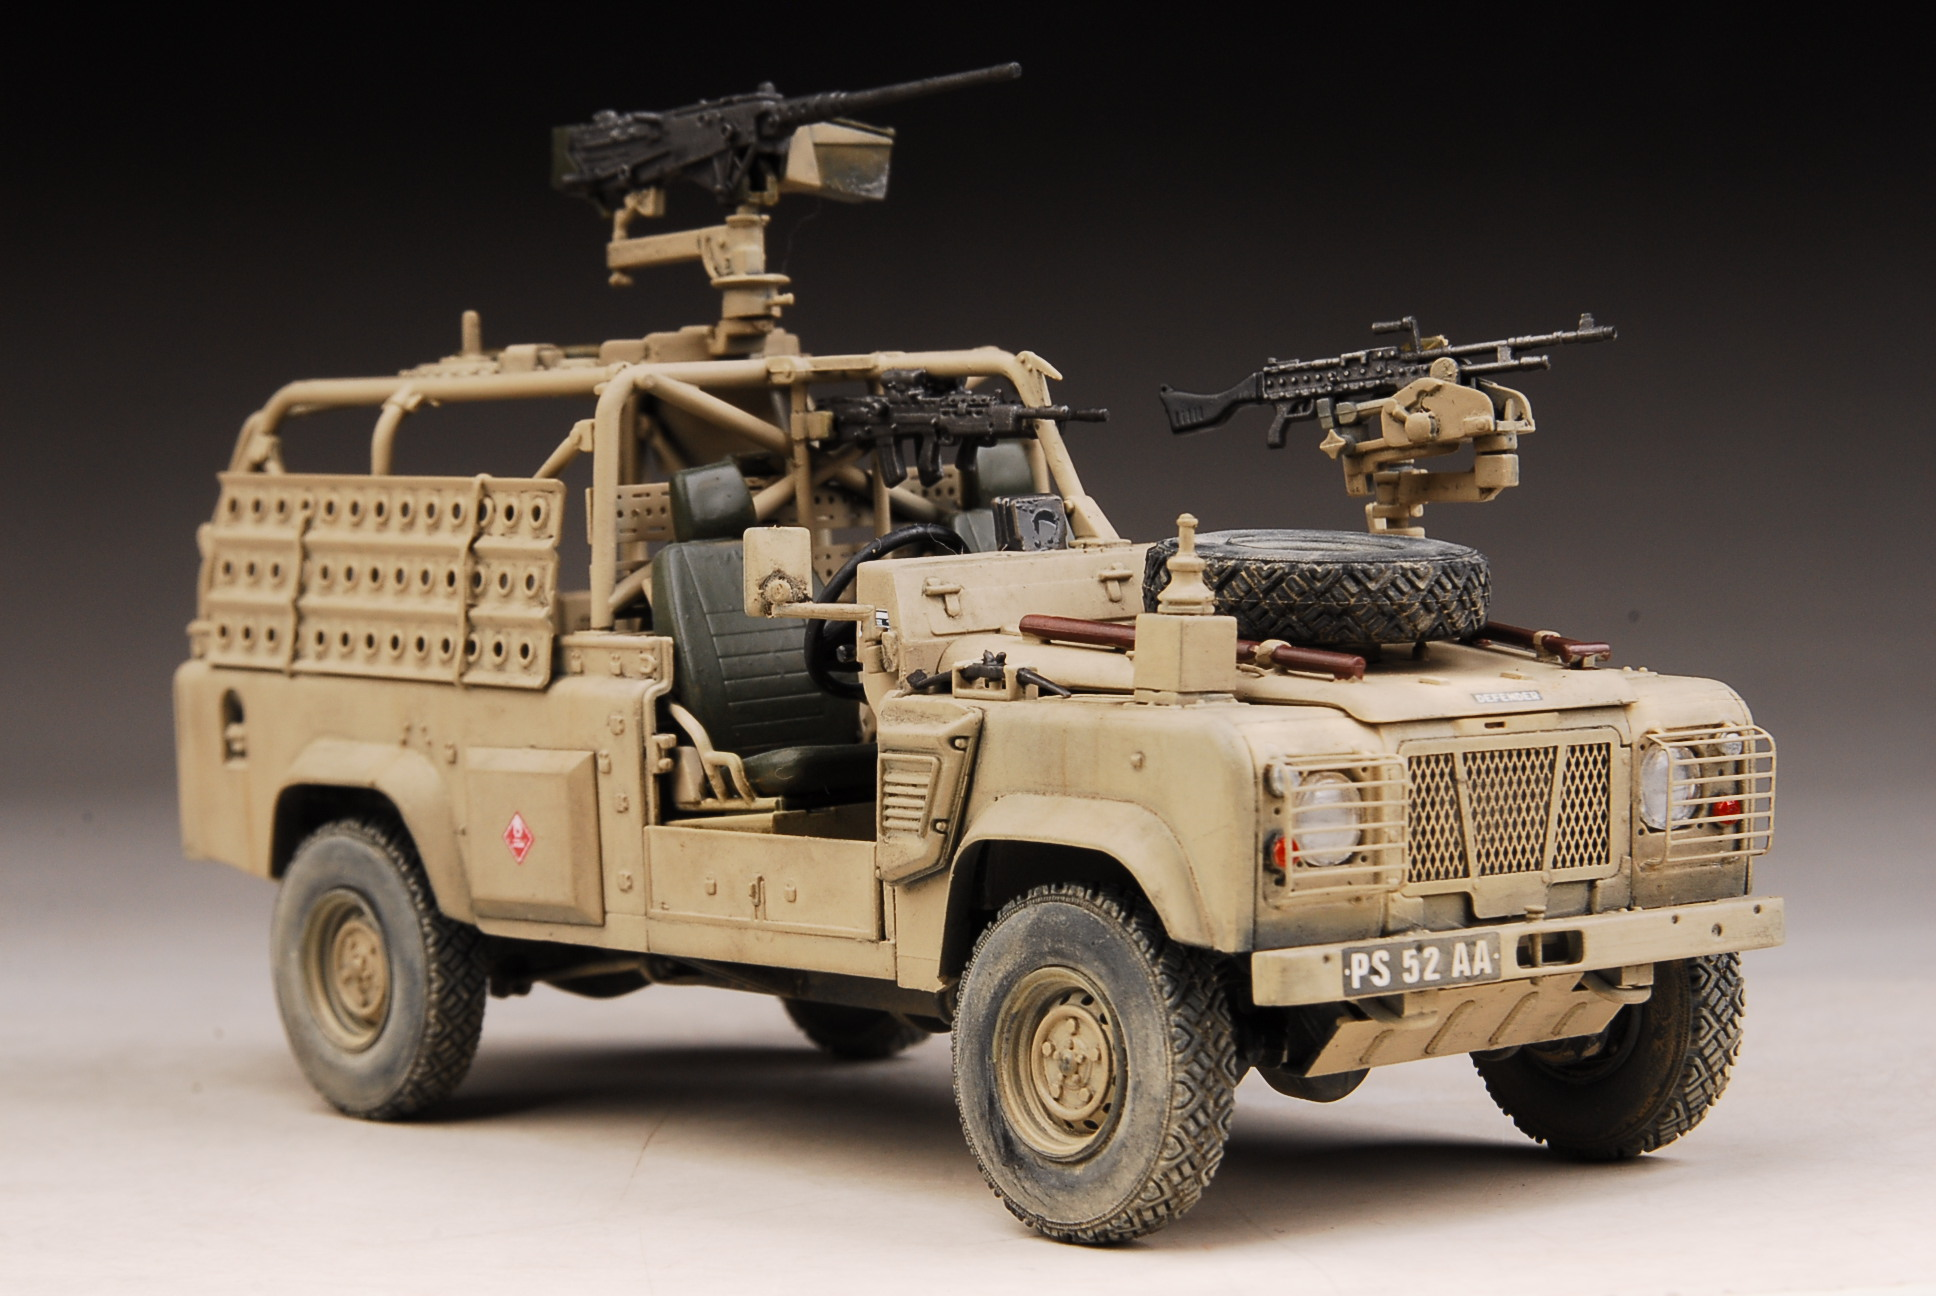 series landrover for the land pink rover a by sas were approximately desert photo iia s adapted sale panther stock hundred use